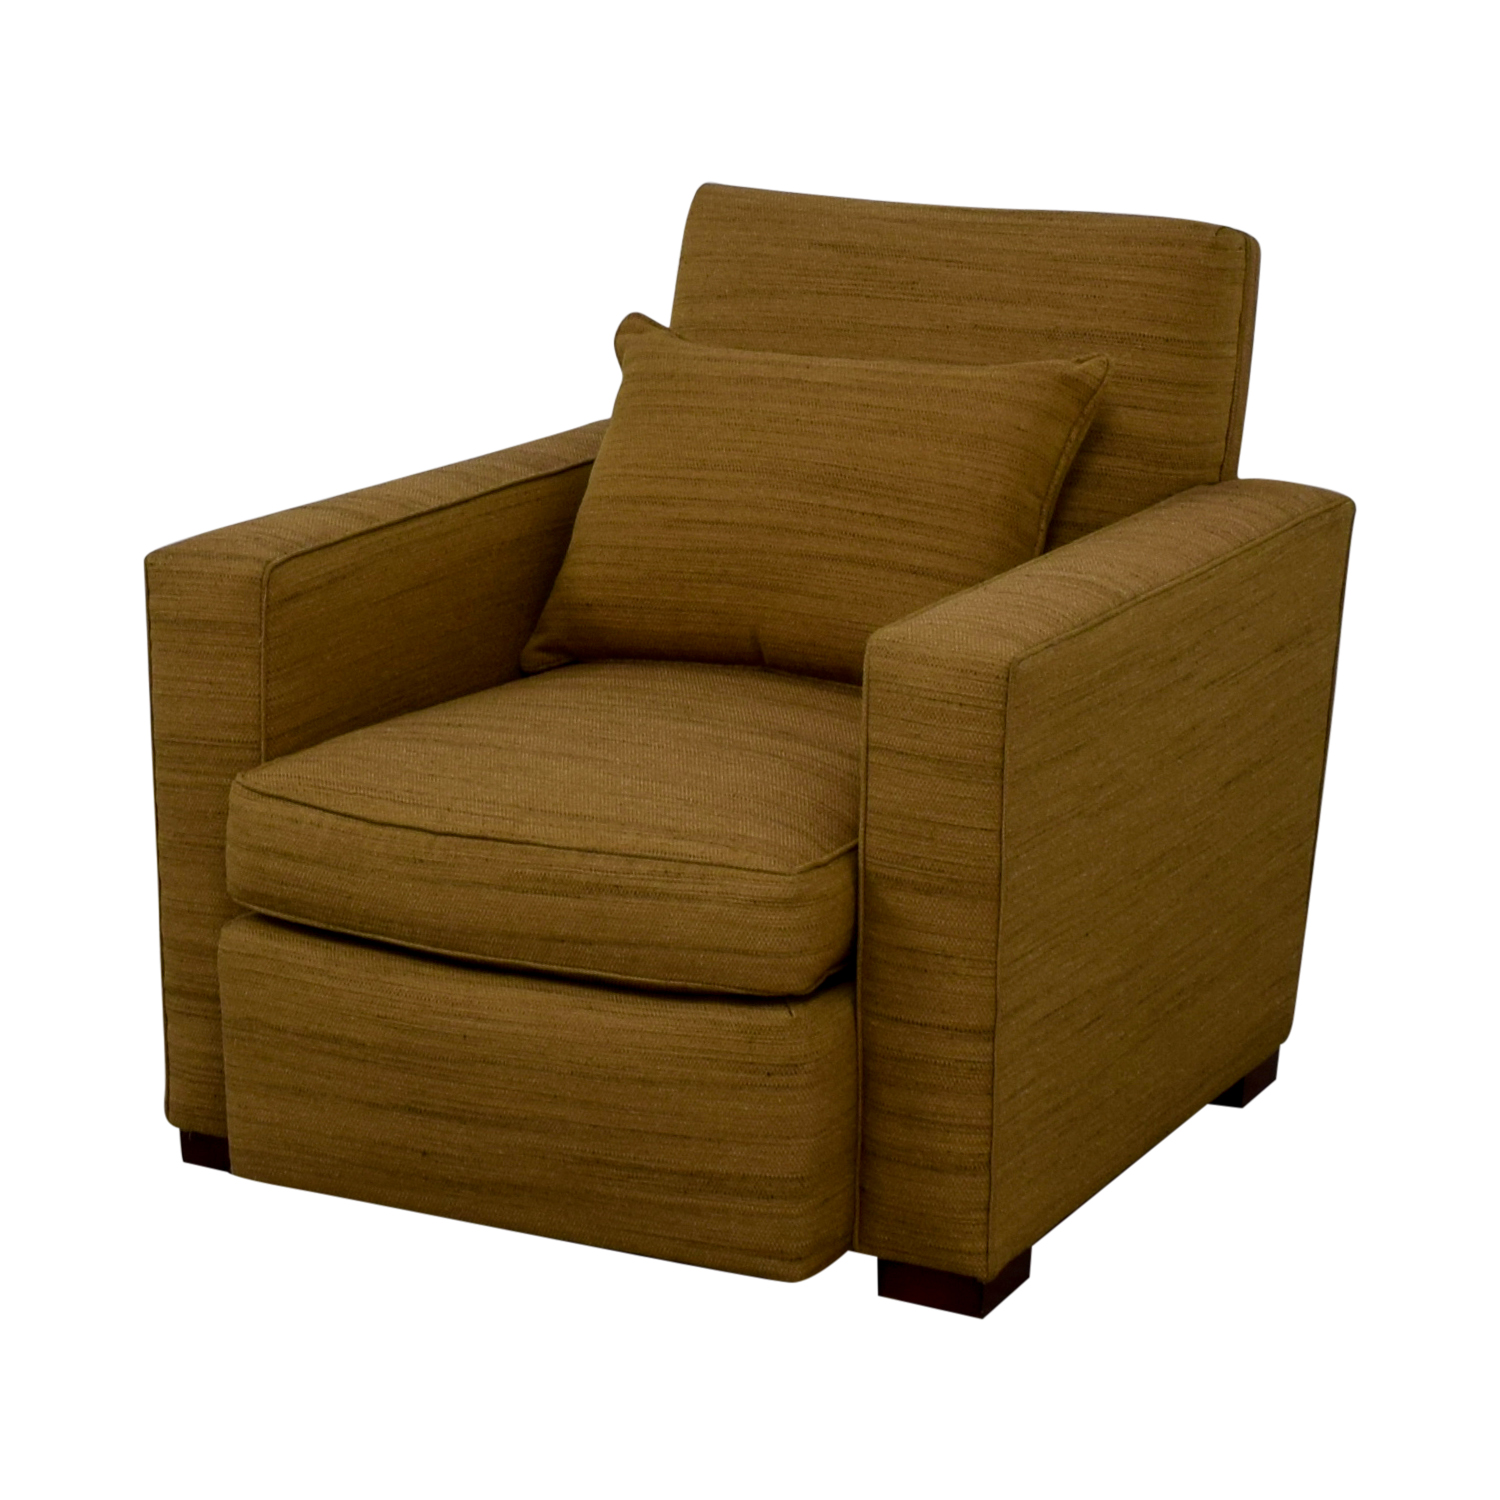 hickory chairs for sale some in spanish 79 off chair classic modern club on